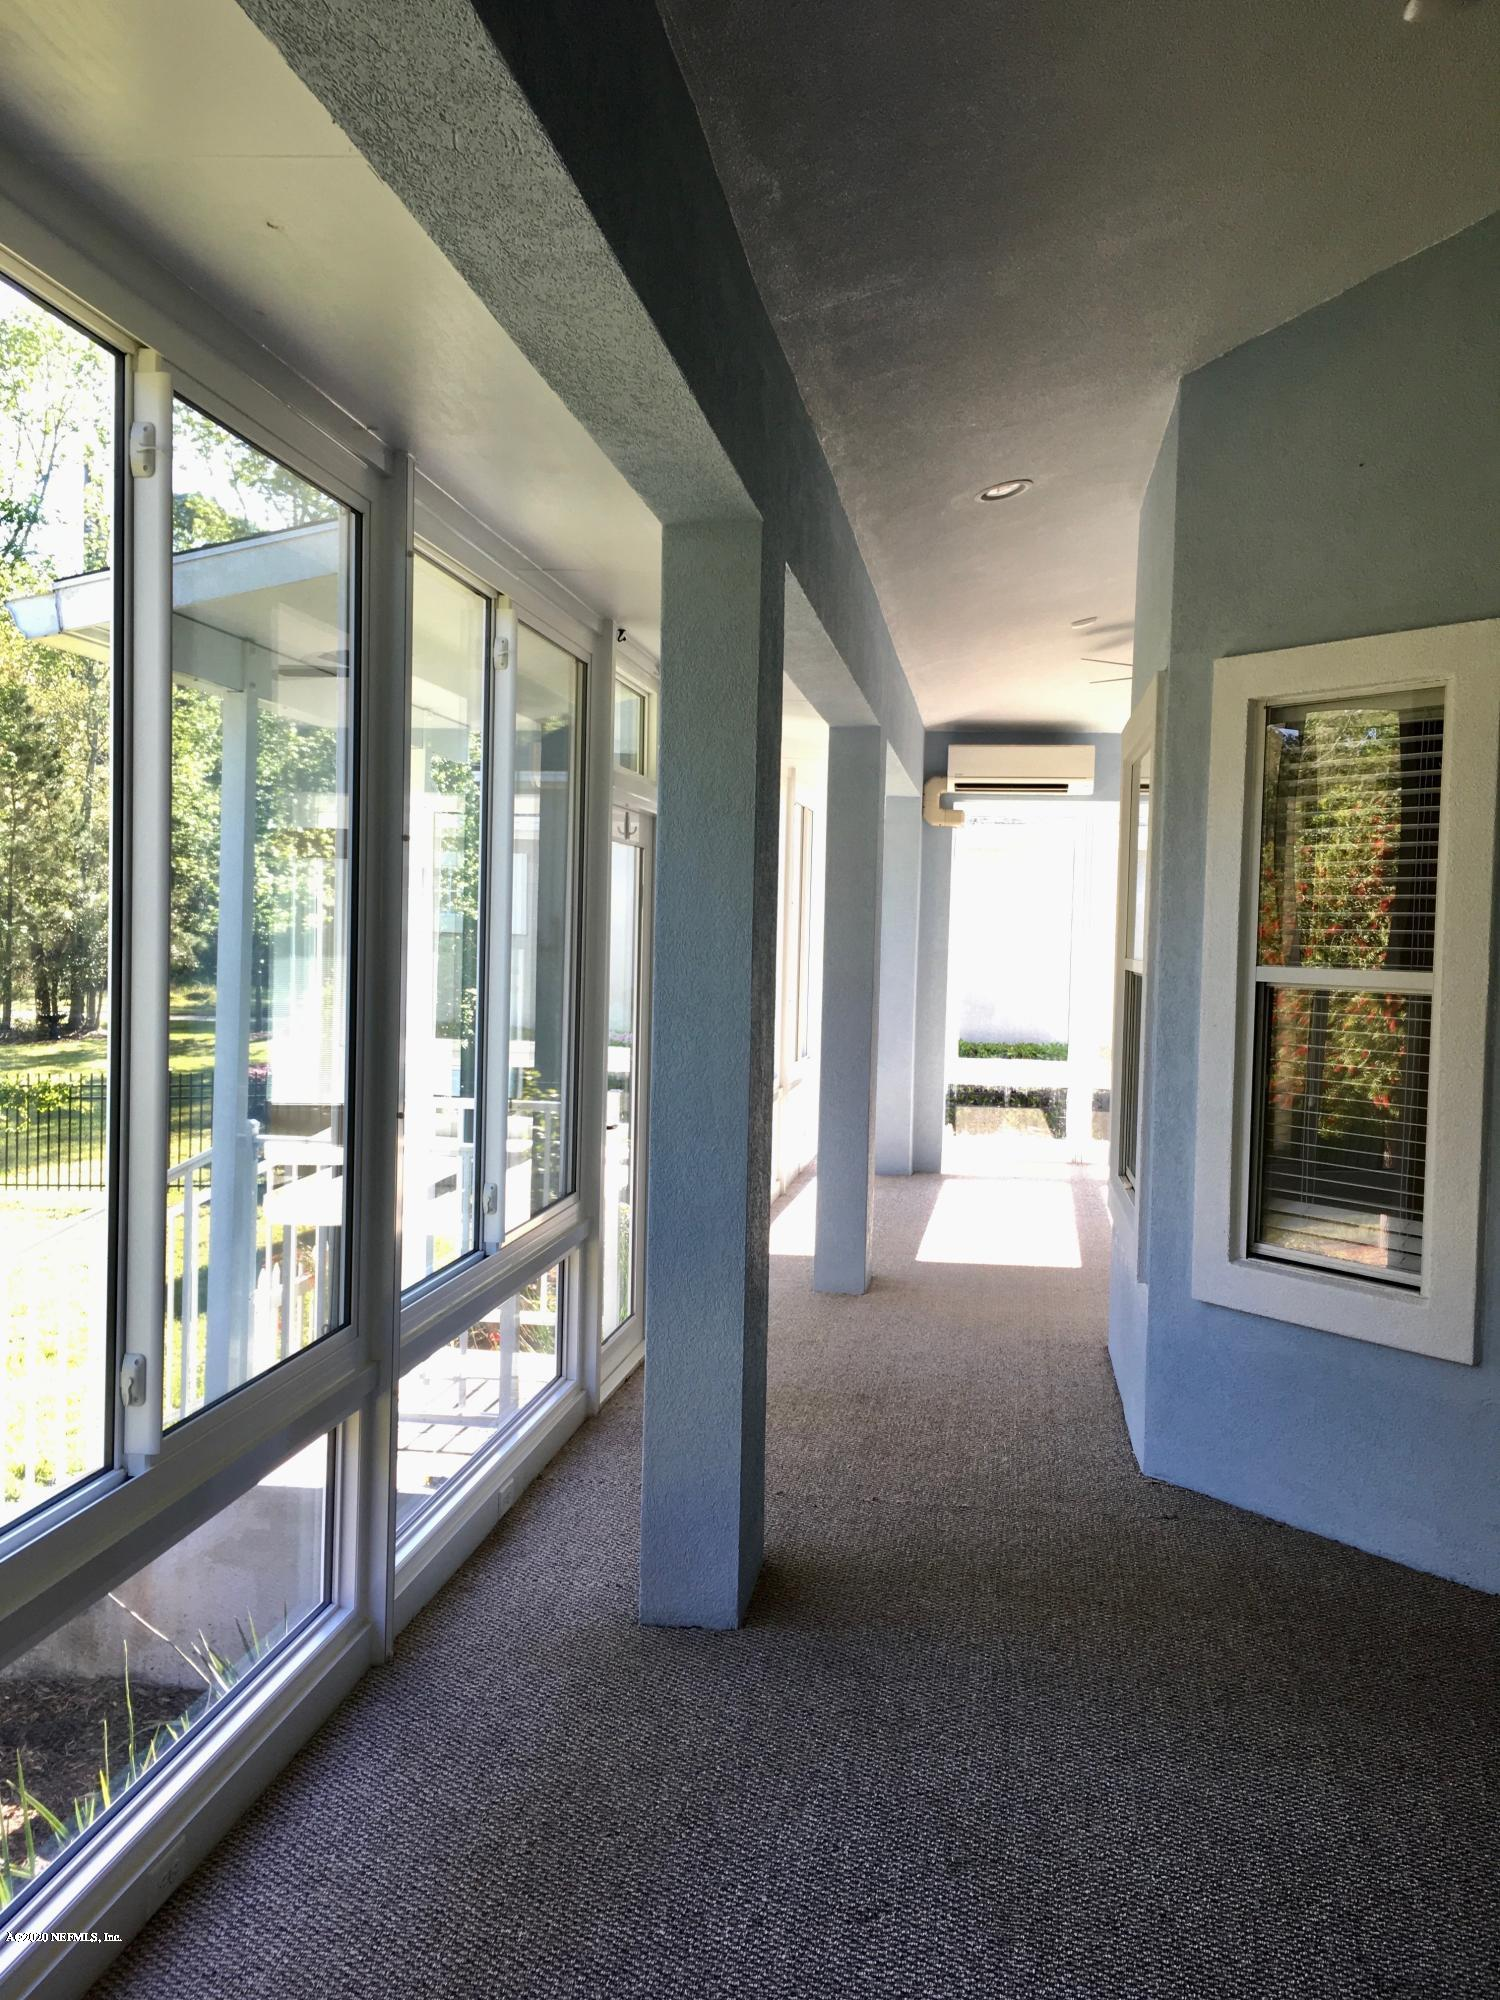 2588 COUNTRY CLUB, ORANGE PARK, FLORIDA 32073, 4 Bedrooms Bedrooms, ,2 BathroomsBathrooms,Residential,For sale,COUNTRY CLUB,1045008